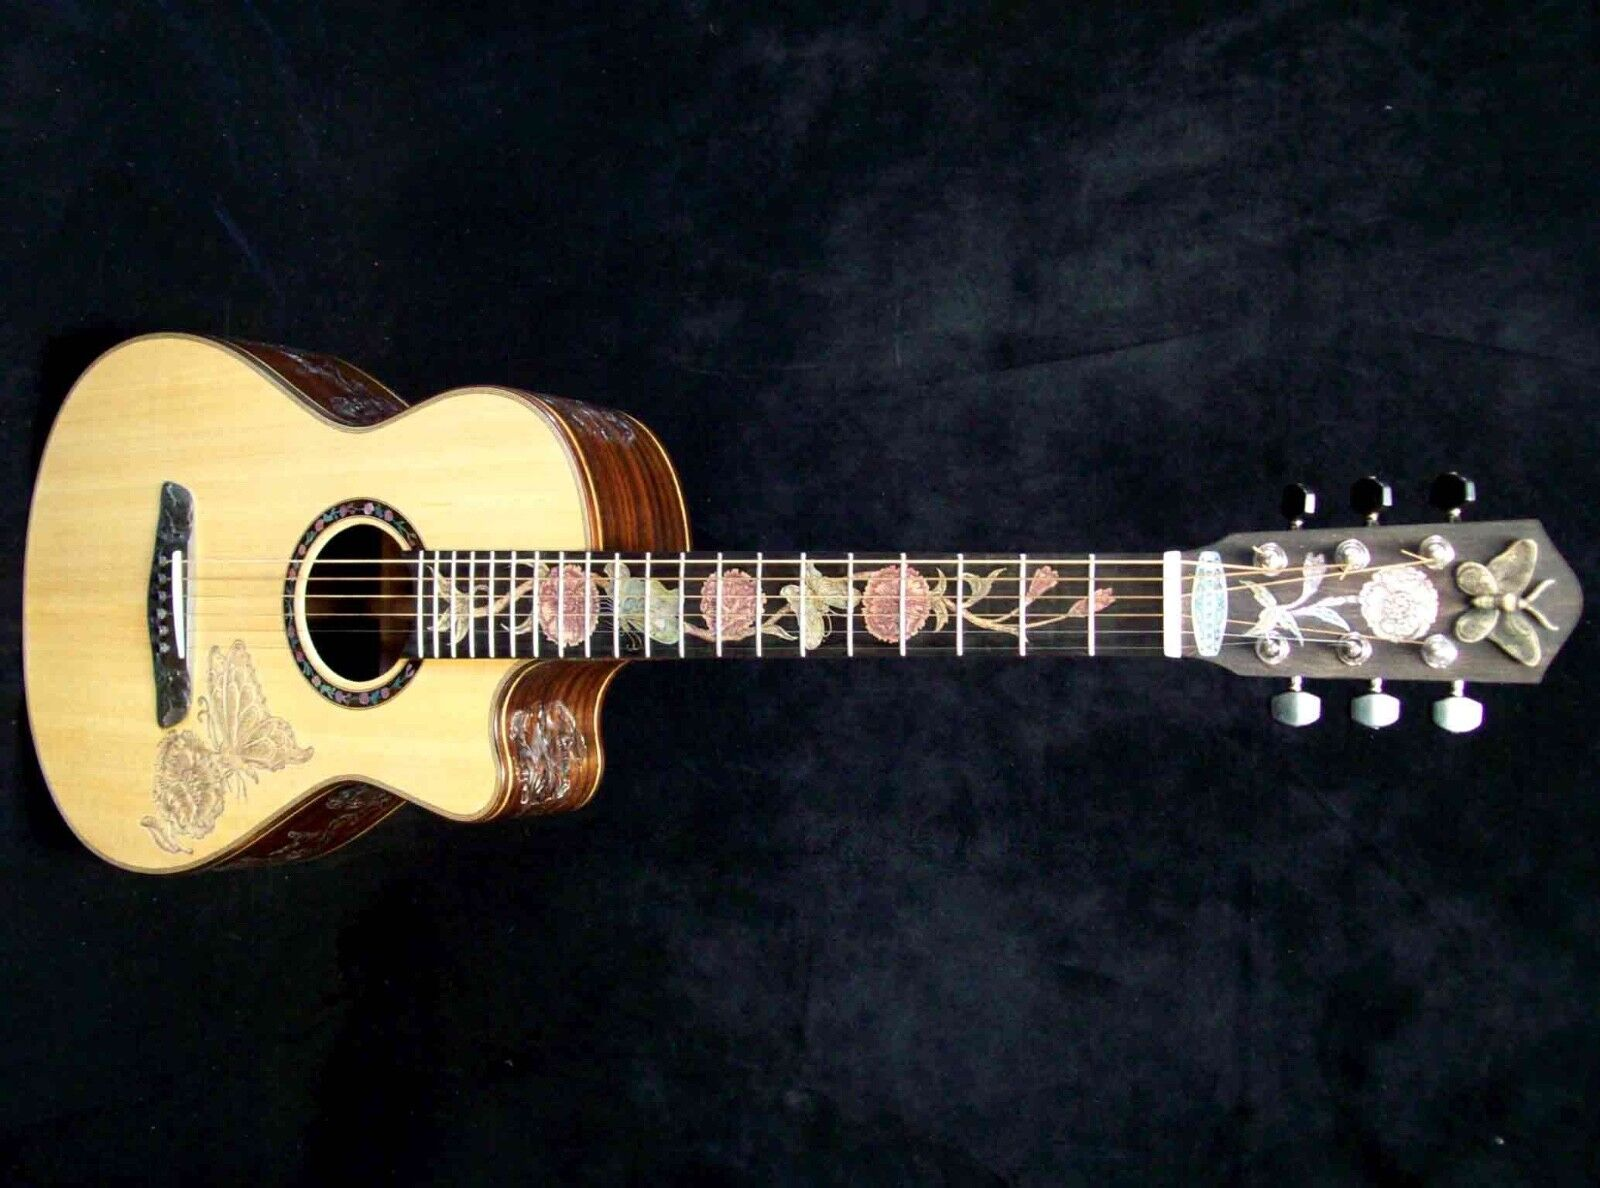 Blauberry Special Order Parlour Guitar Butterfly Motif -  90 Day Delivery